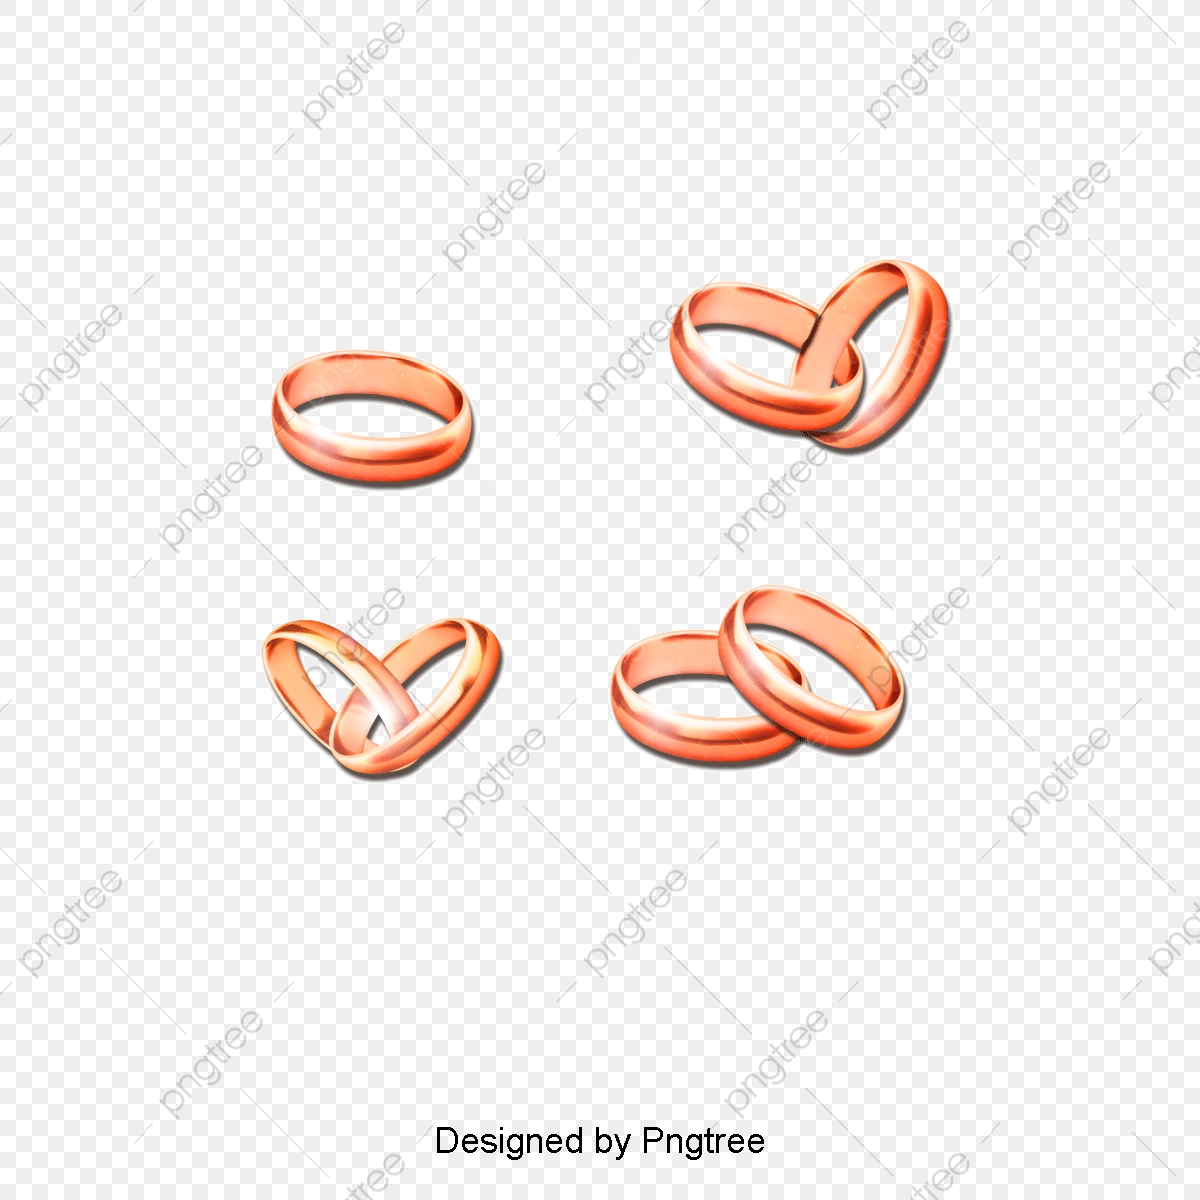 5 Gold Ring Design Vector, Golden Ring, Ring, On The Ring PNG.